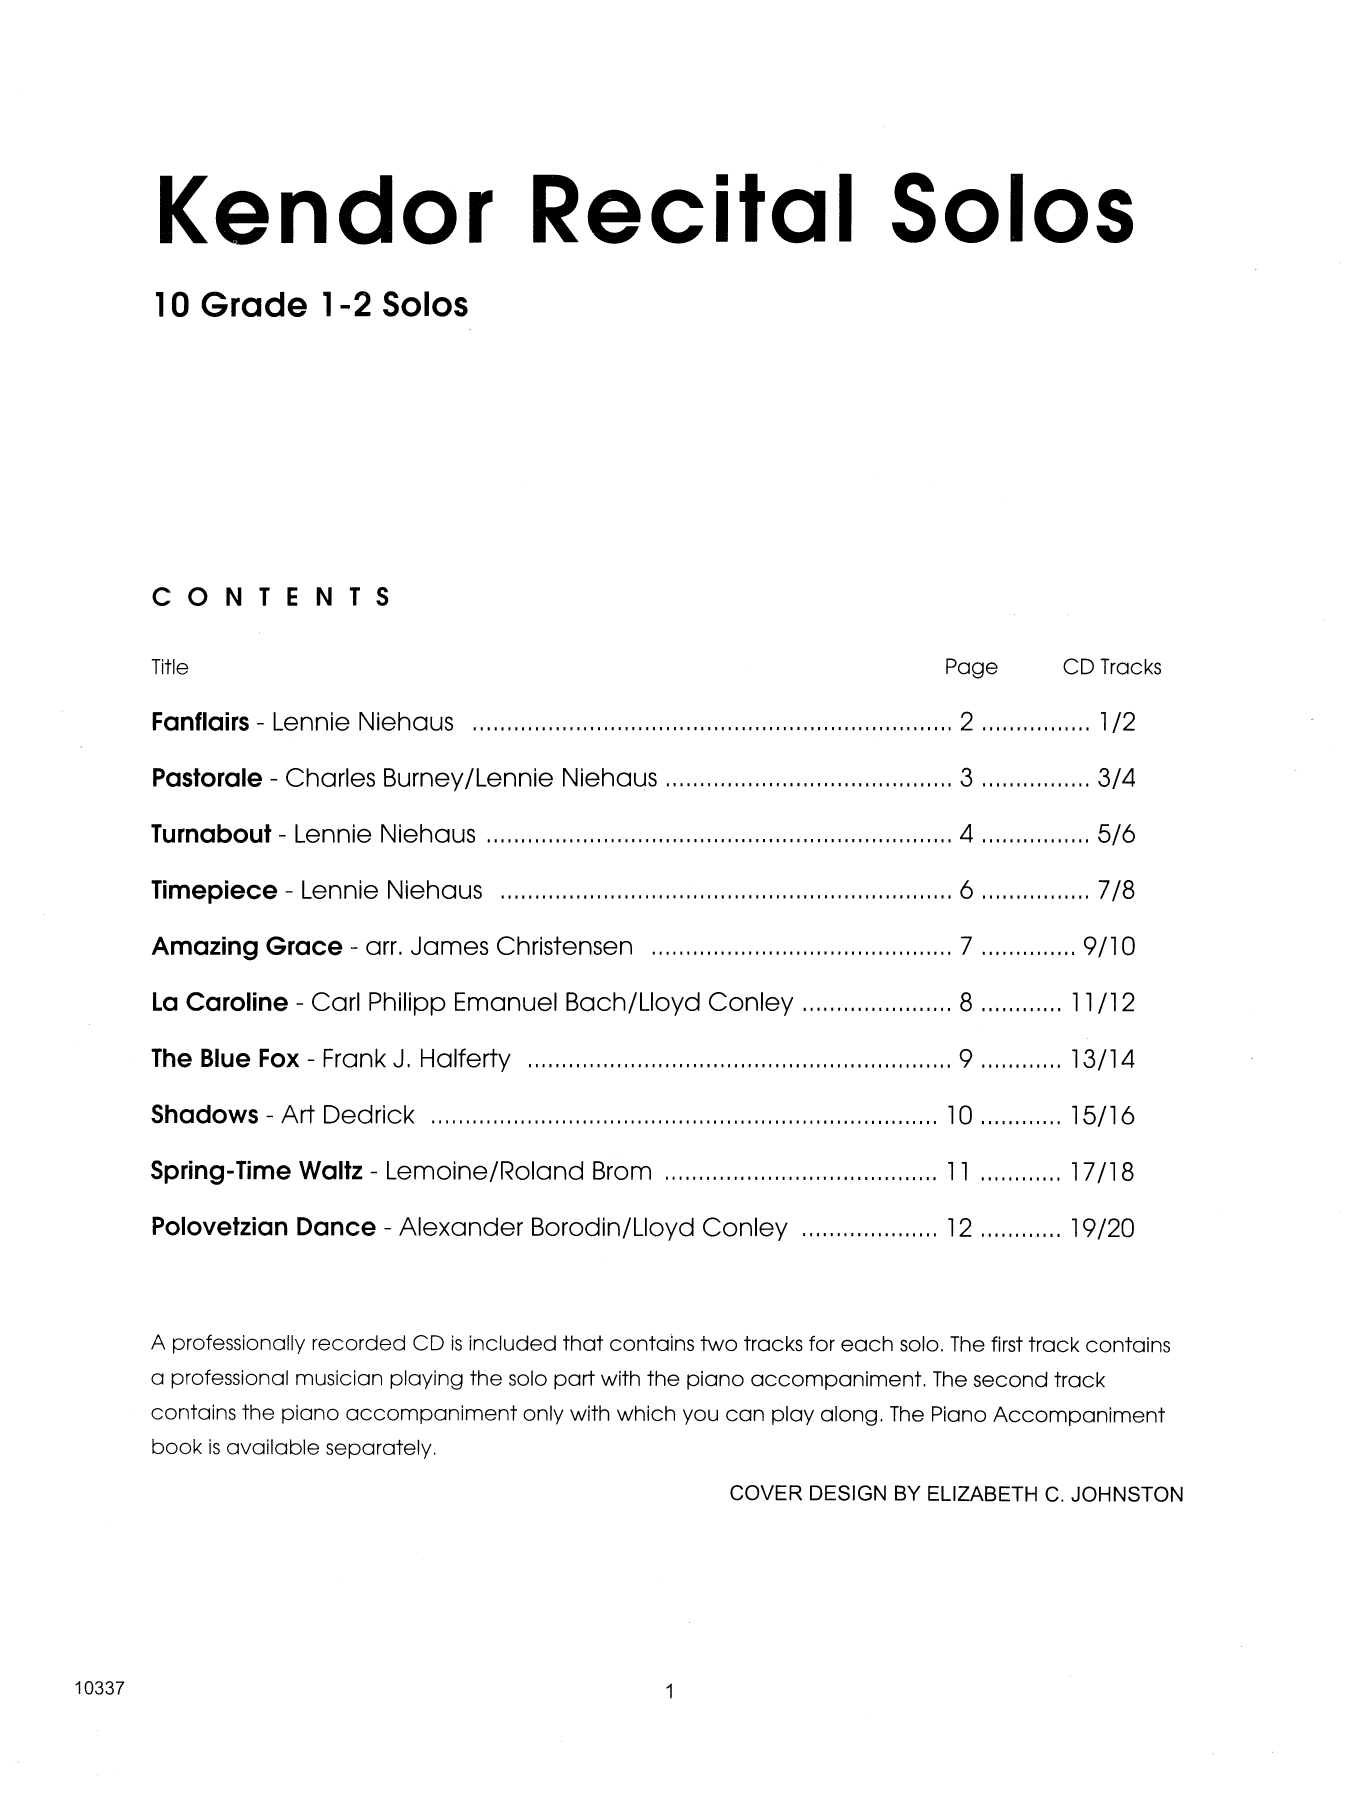 Kendor Recital Solos - Bb Tenor Saxophone - Solo Book Sheet Music